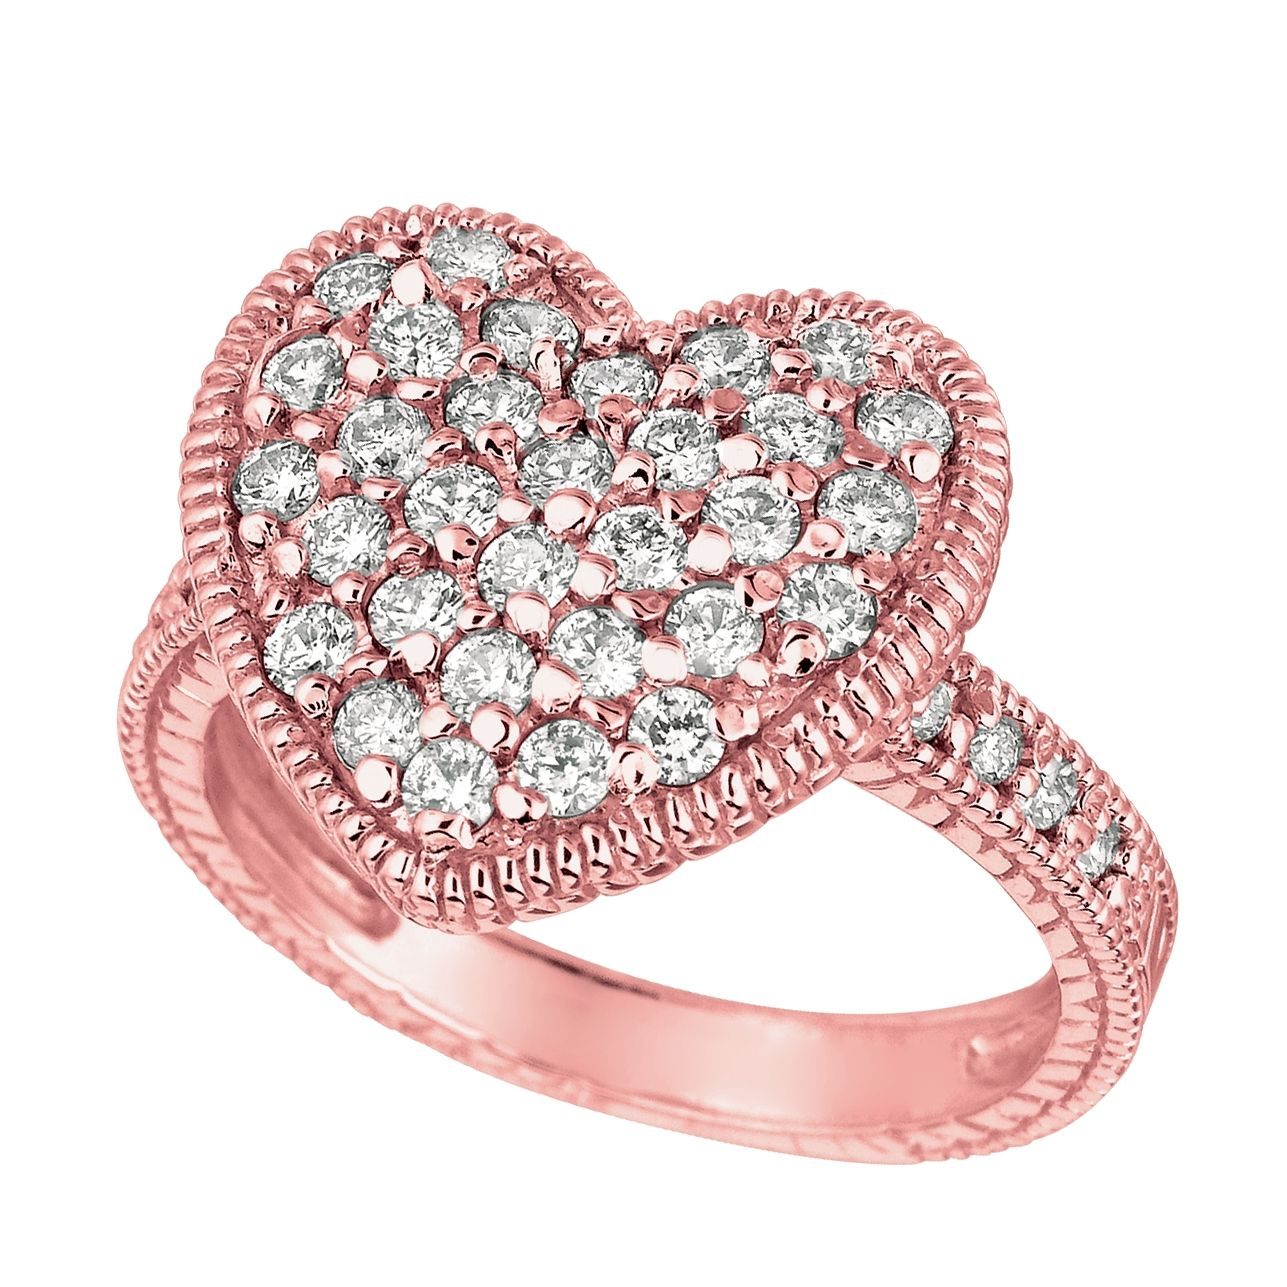 pink romantic inc ring s pretty heart wedding jewelry white new products box women junxin in gold filled pandoras rings opal fashion